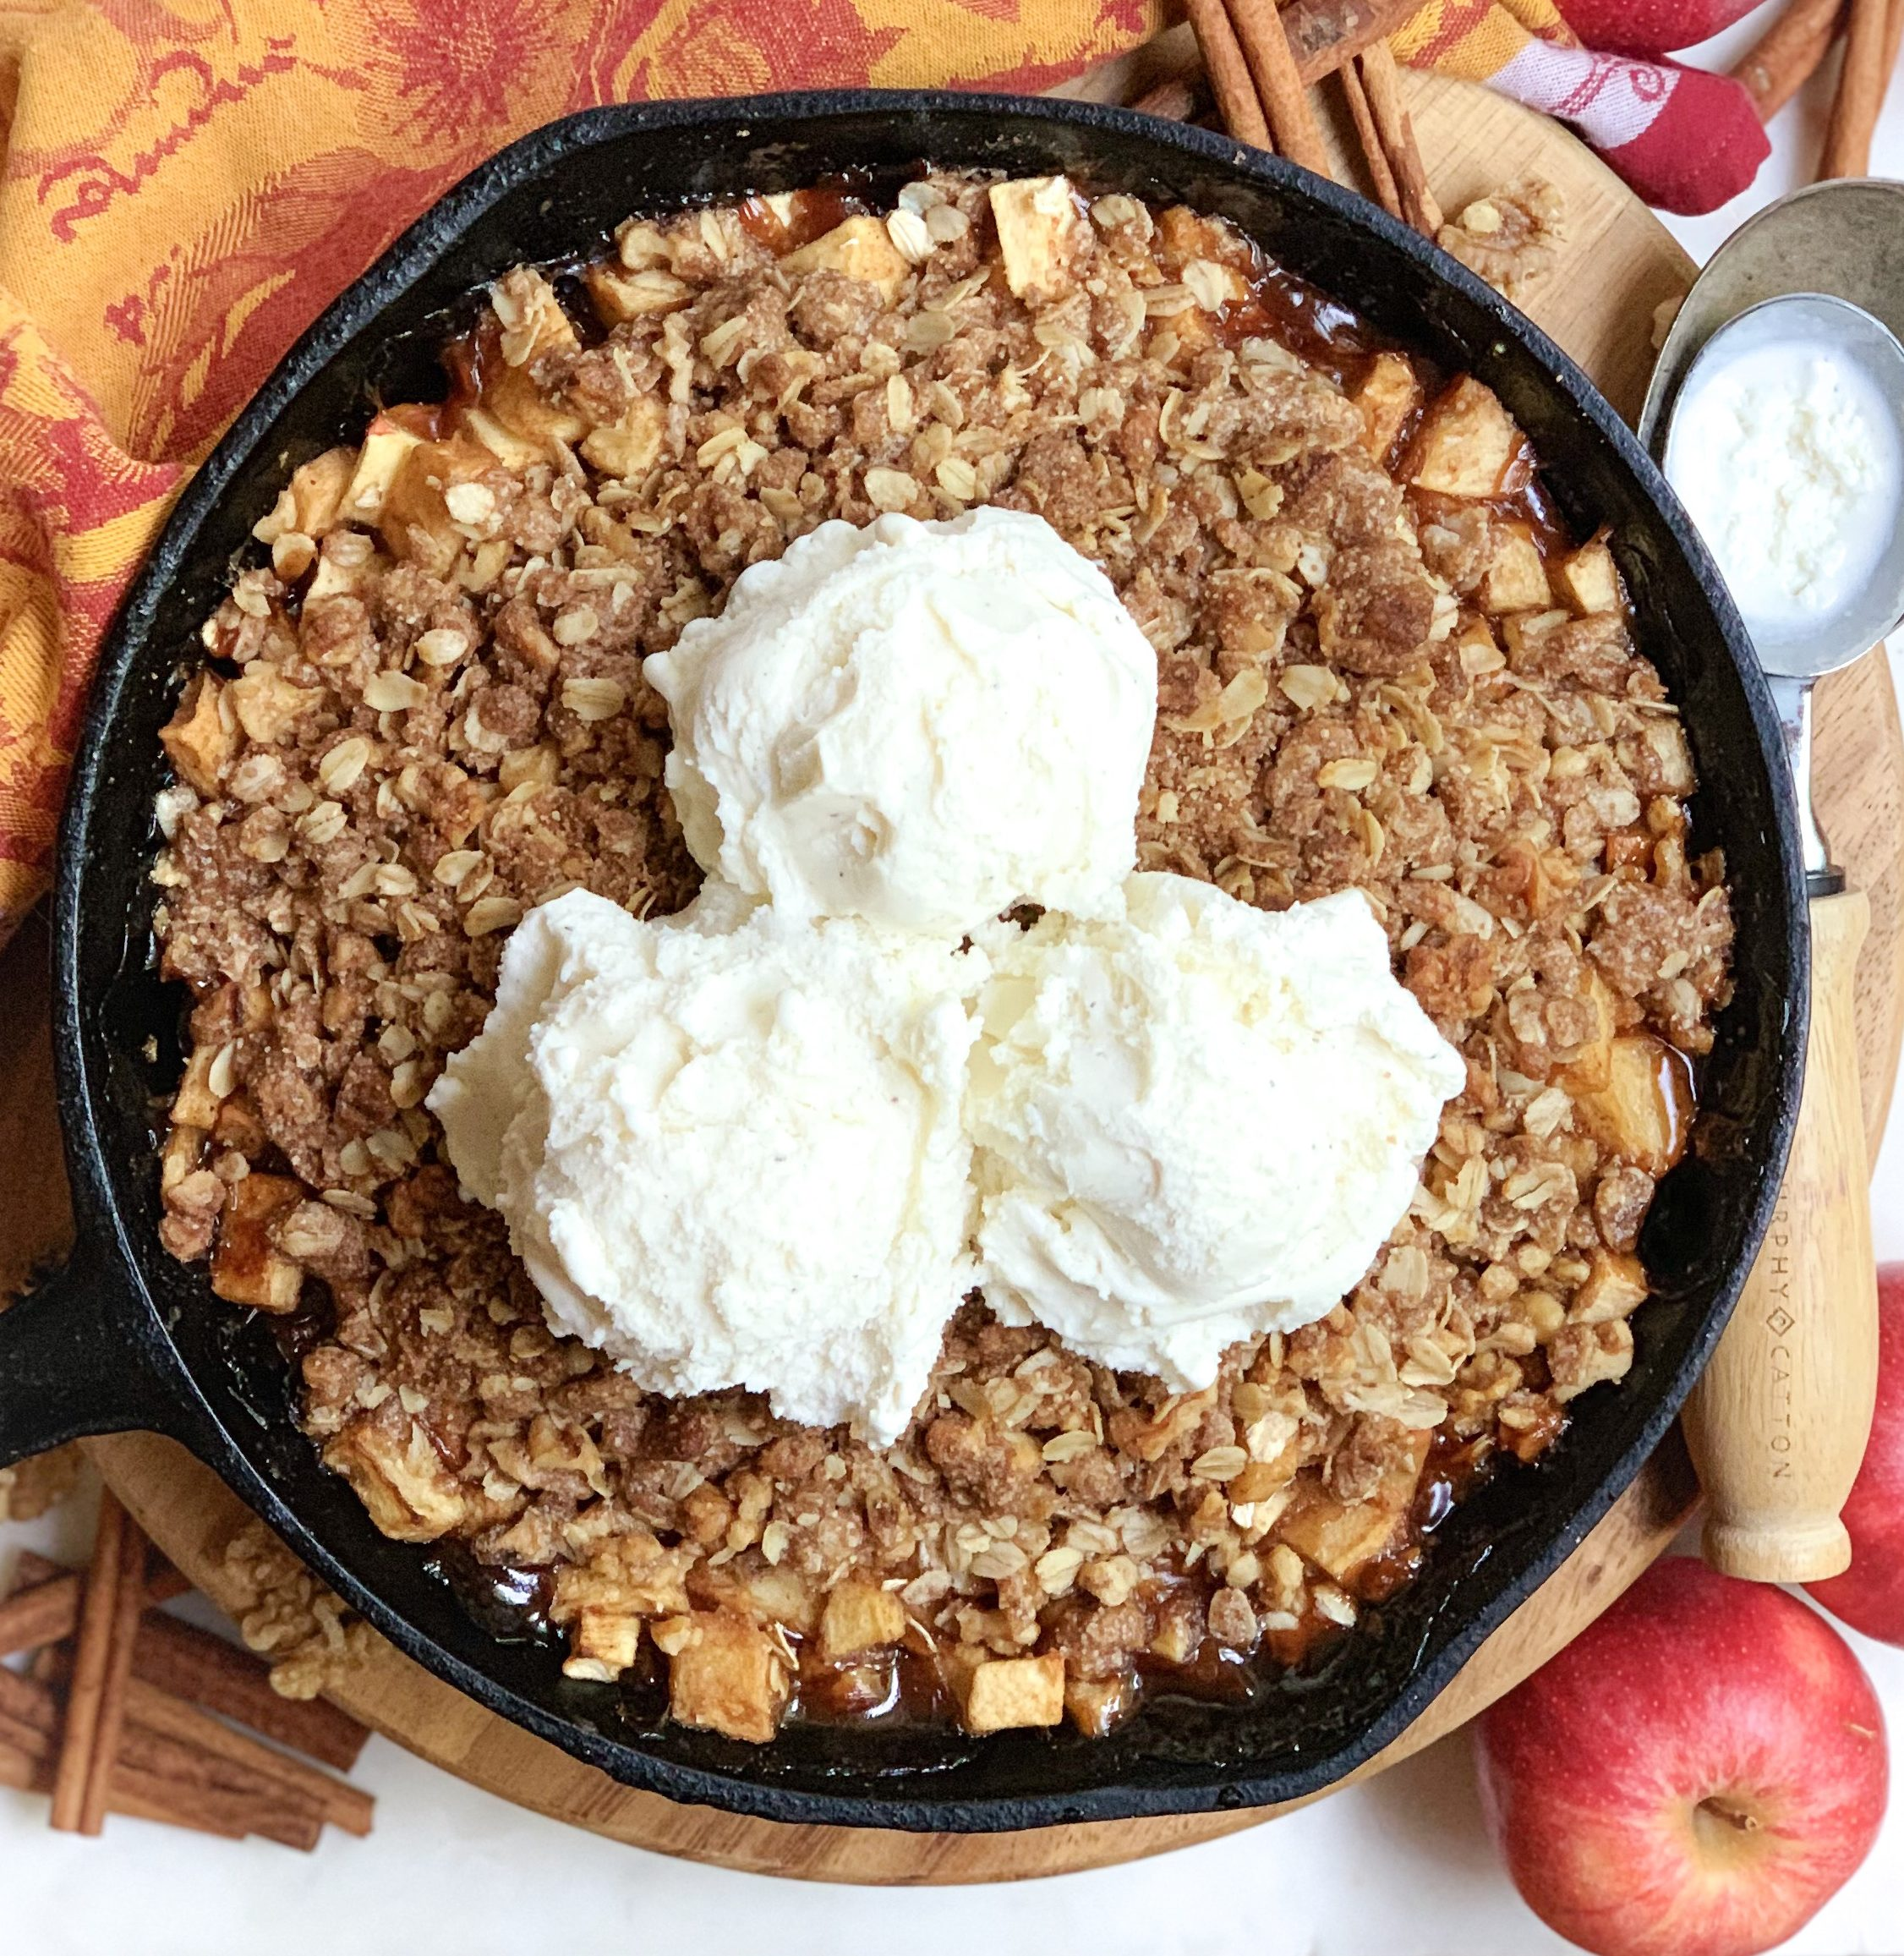 apple crisp, vegan apple crisp, skillet apple crisp, vegan skillet apple crisp, skillet apple pie